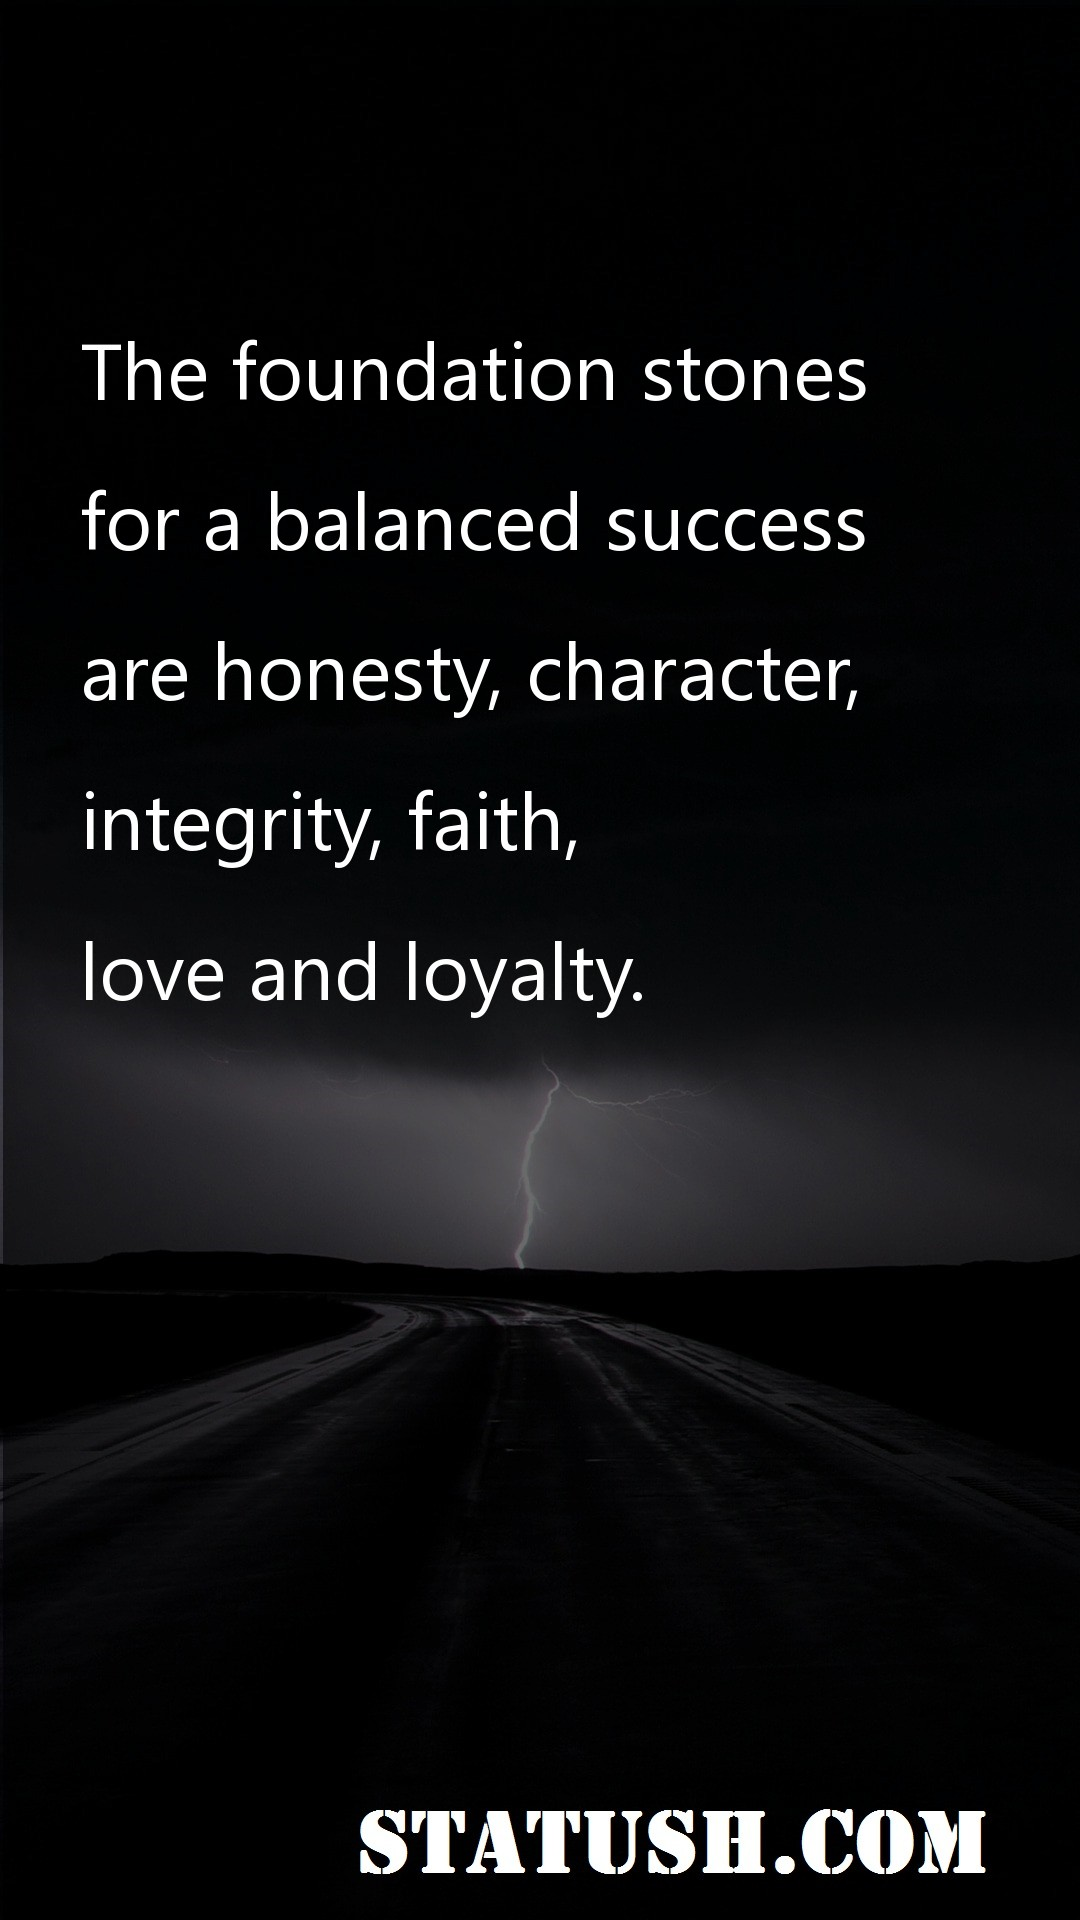 The foundation stones for a balanced success